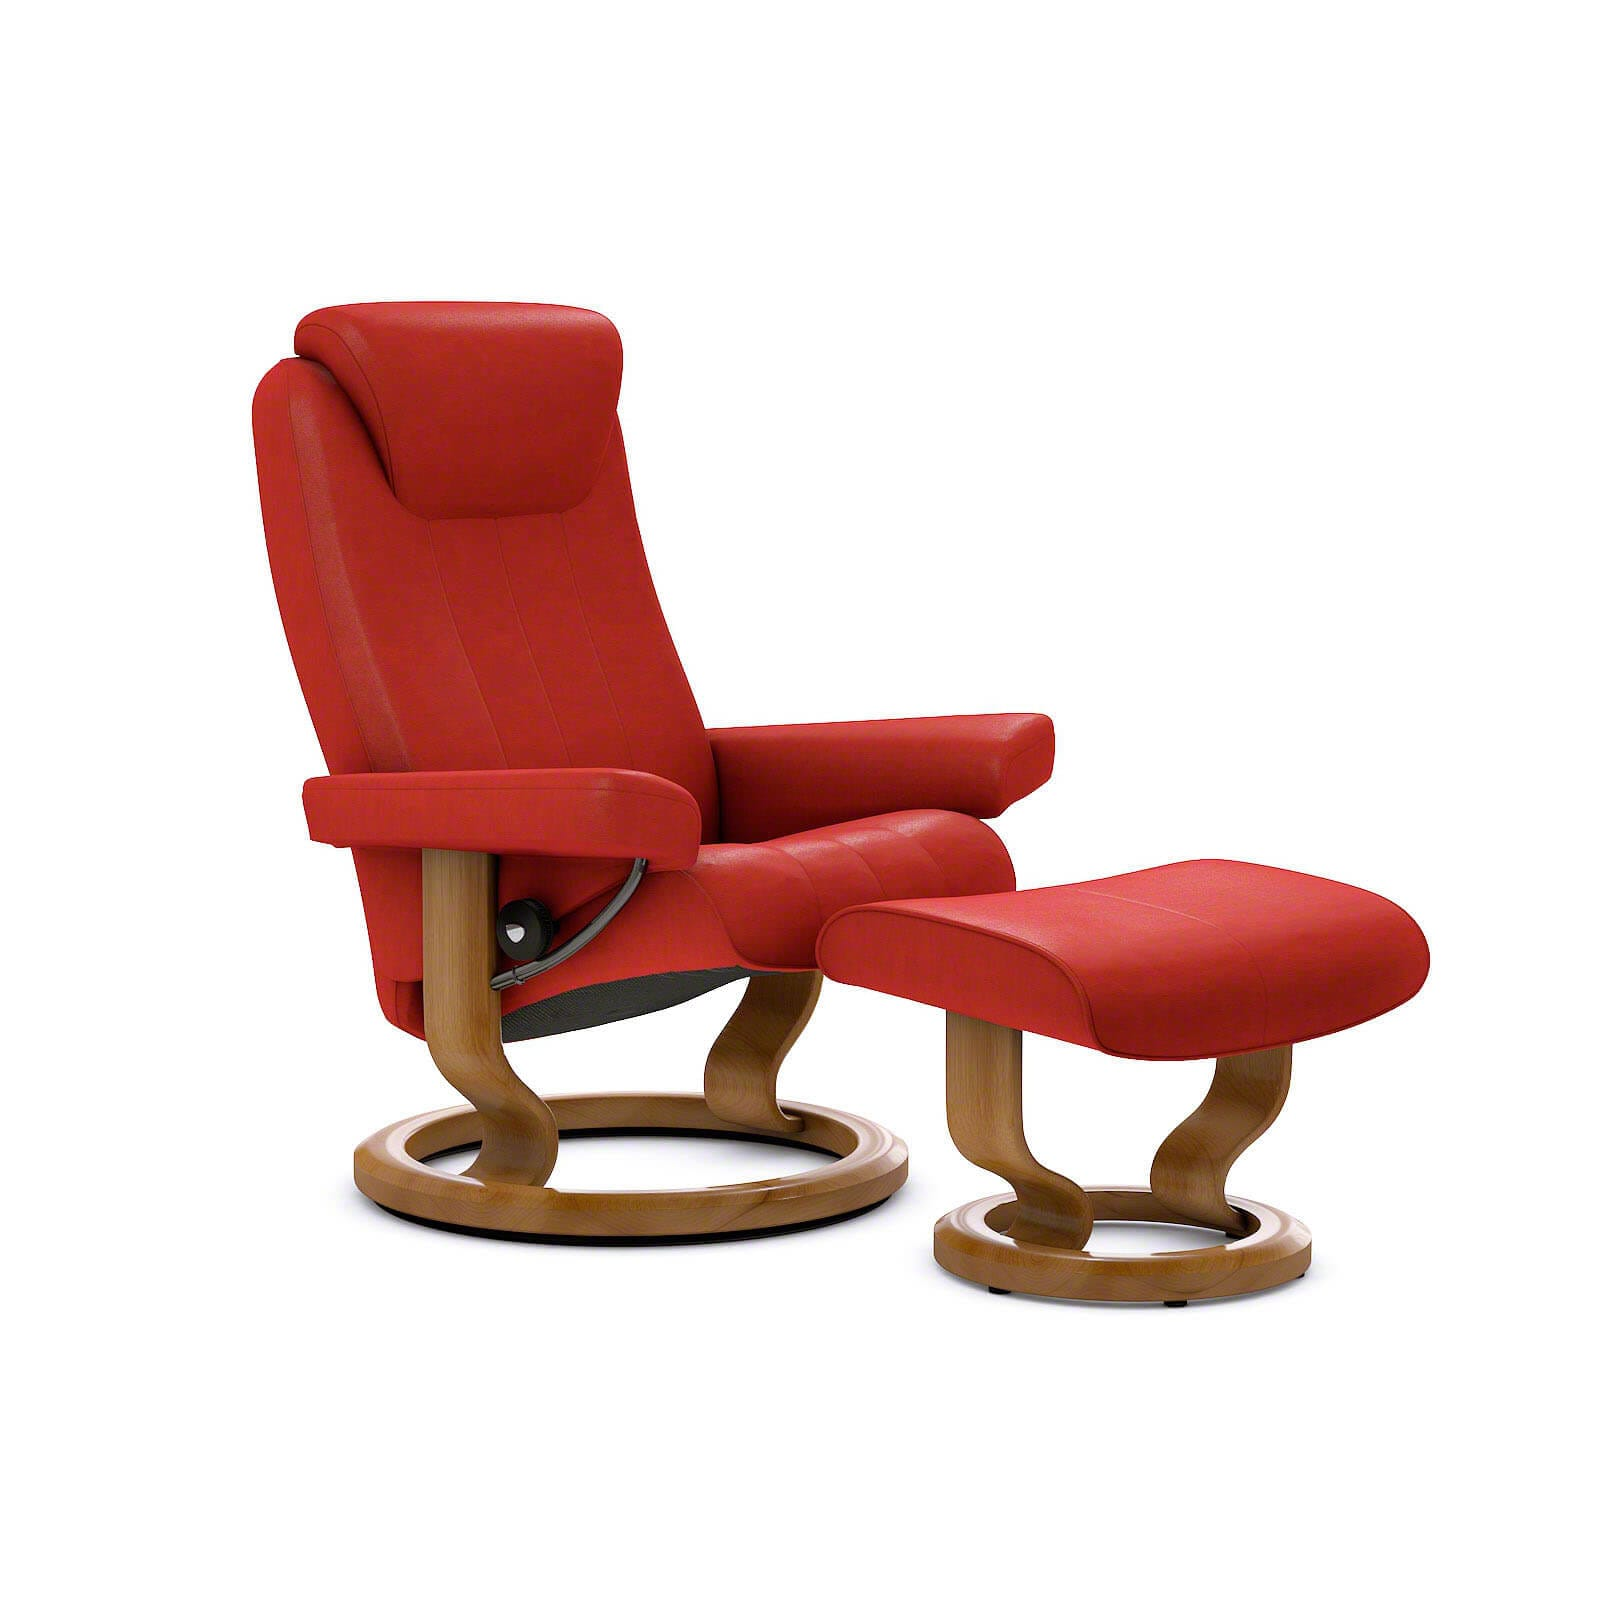 Stressless Sessel Bliss Stressless Bliss Sessel Tomato Mit Hocker Stressless Shop